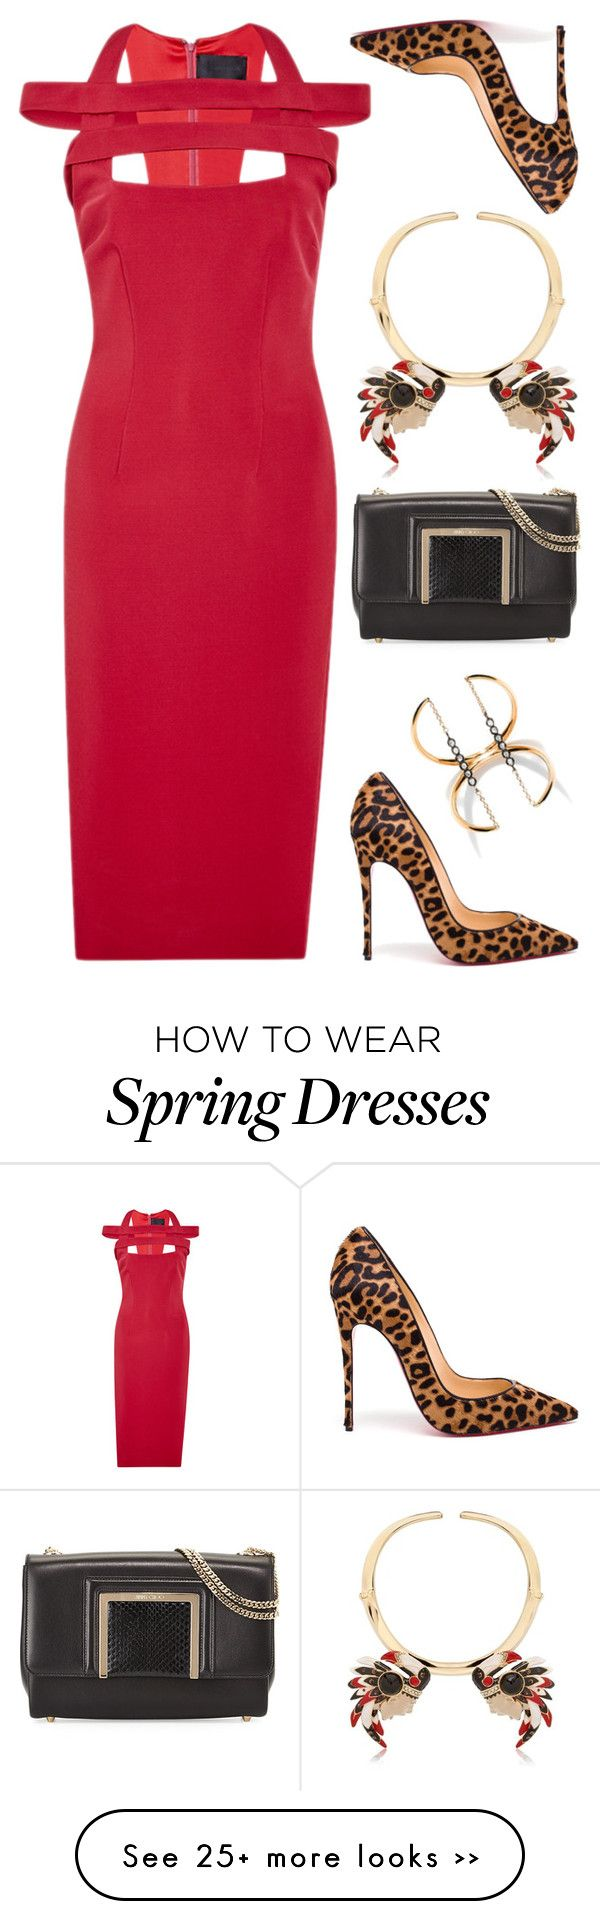 """""""Red & Leopard"""" by cherieaustin on Polyvore featuring Cushnie Et Ochs, Christian Louboutin, Jimmy Choo, Schield Collection and Yannis Sergakis"""